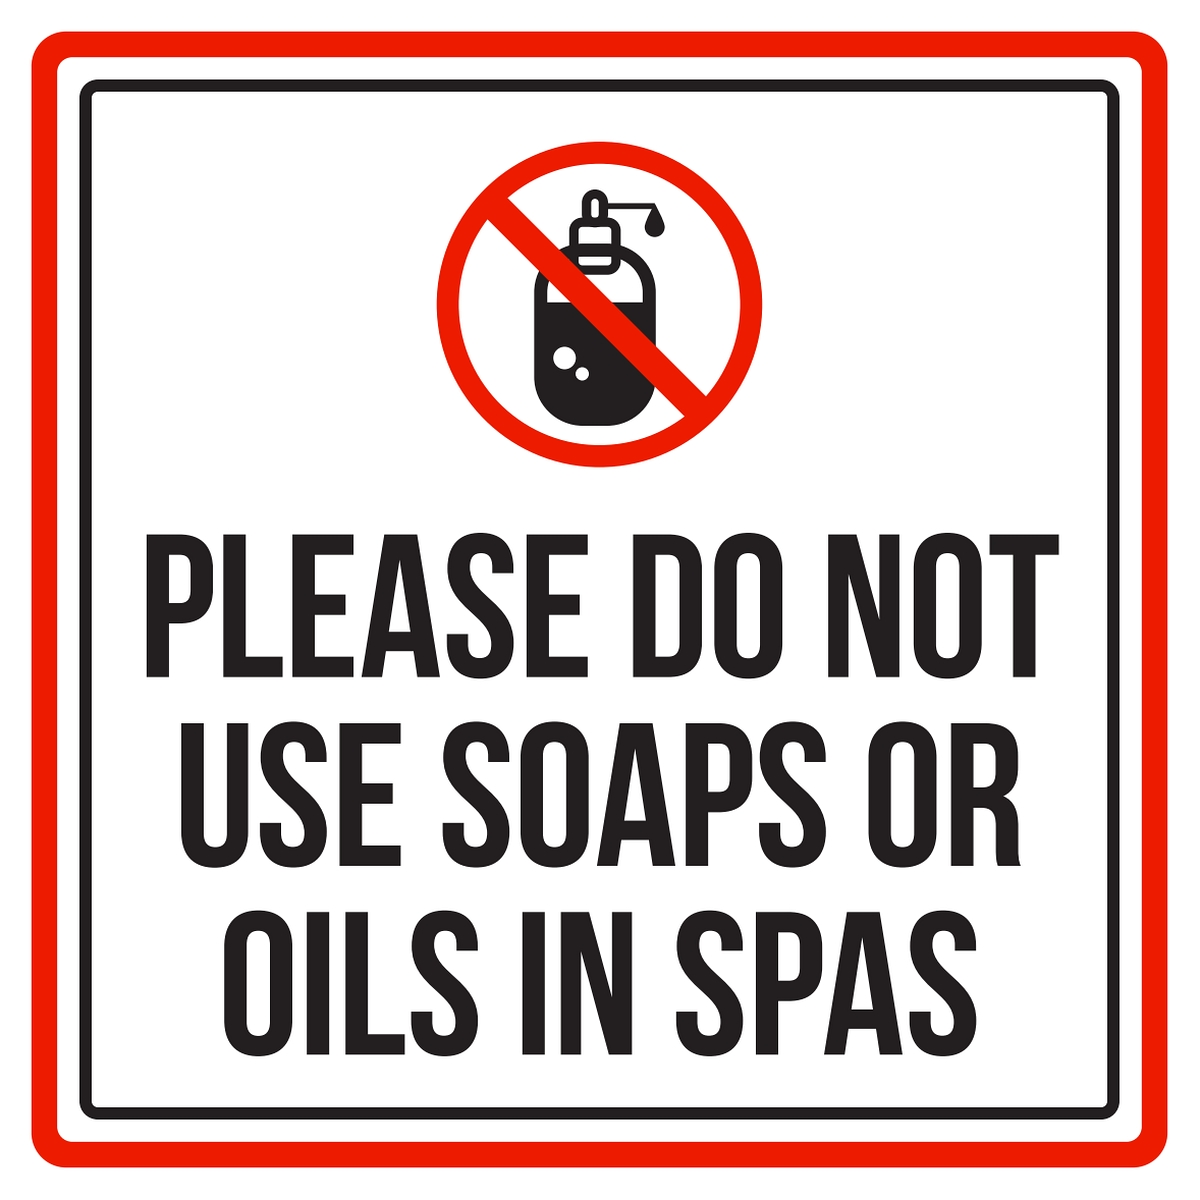 Please Do Not Use Soaps Or Oils In Spas Pool Warning Square Sign - Inch, 12x12